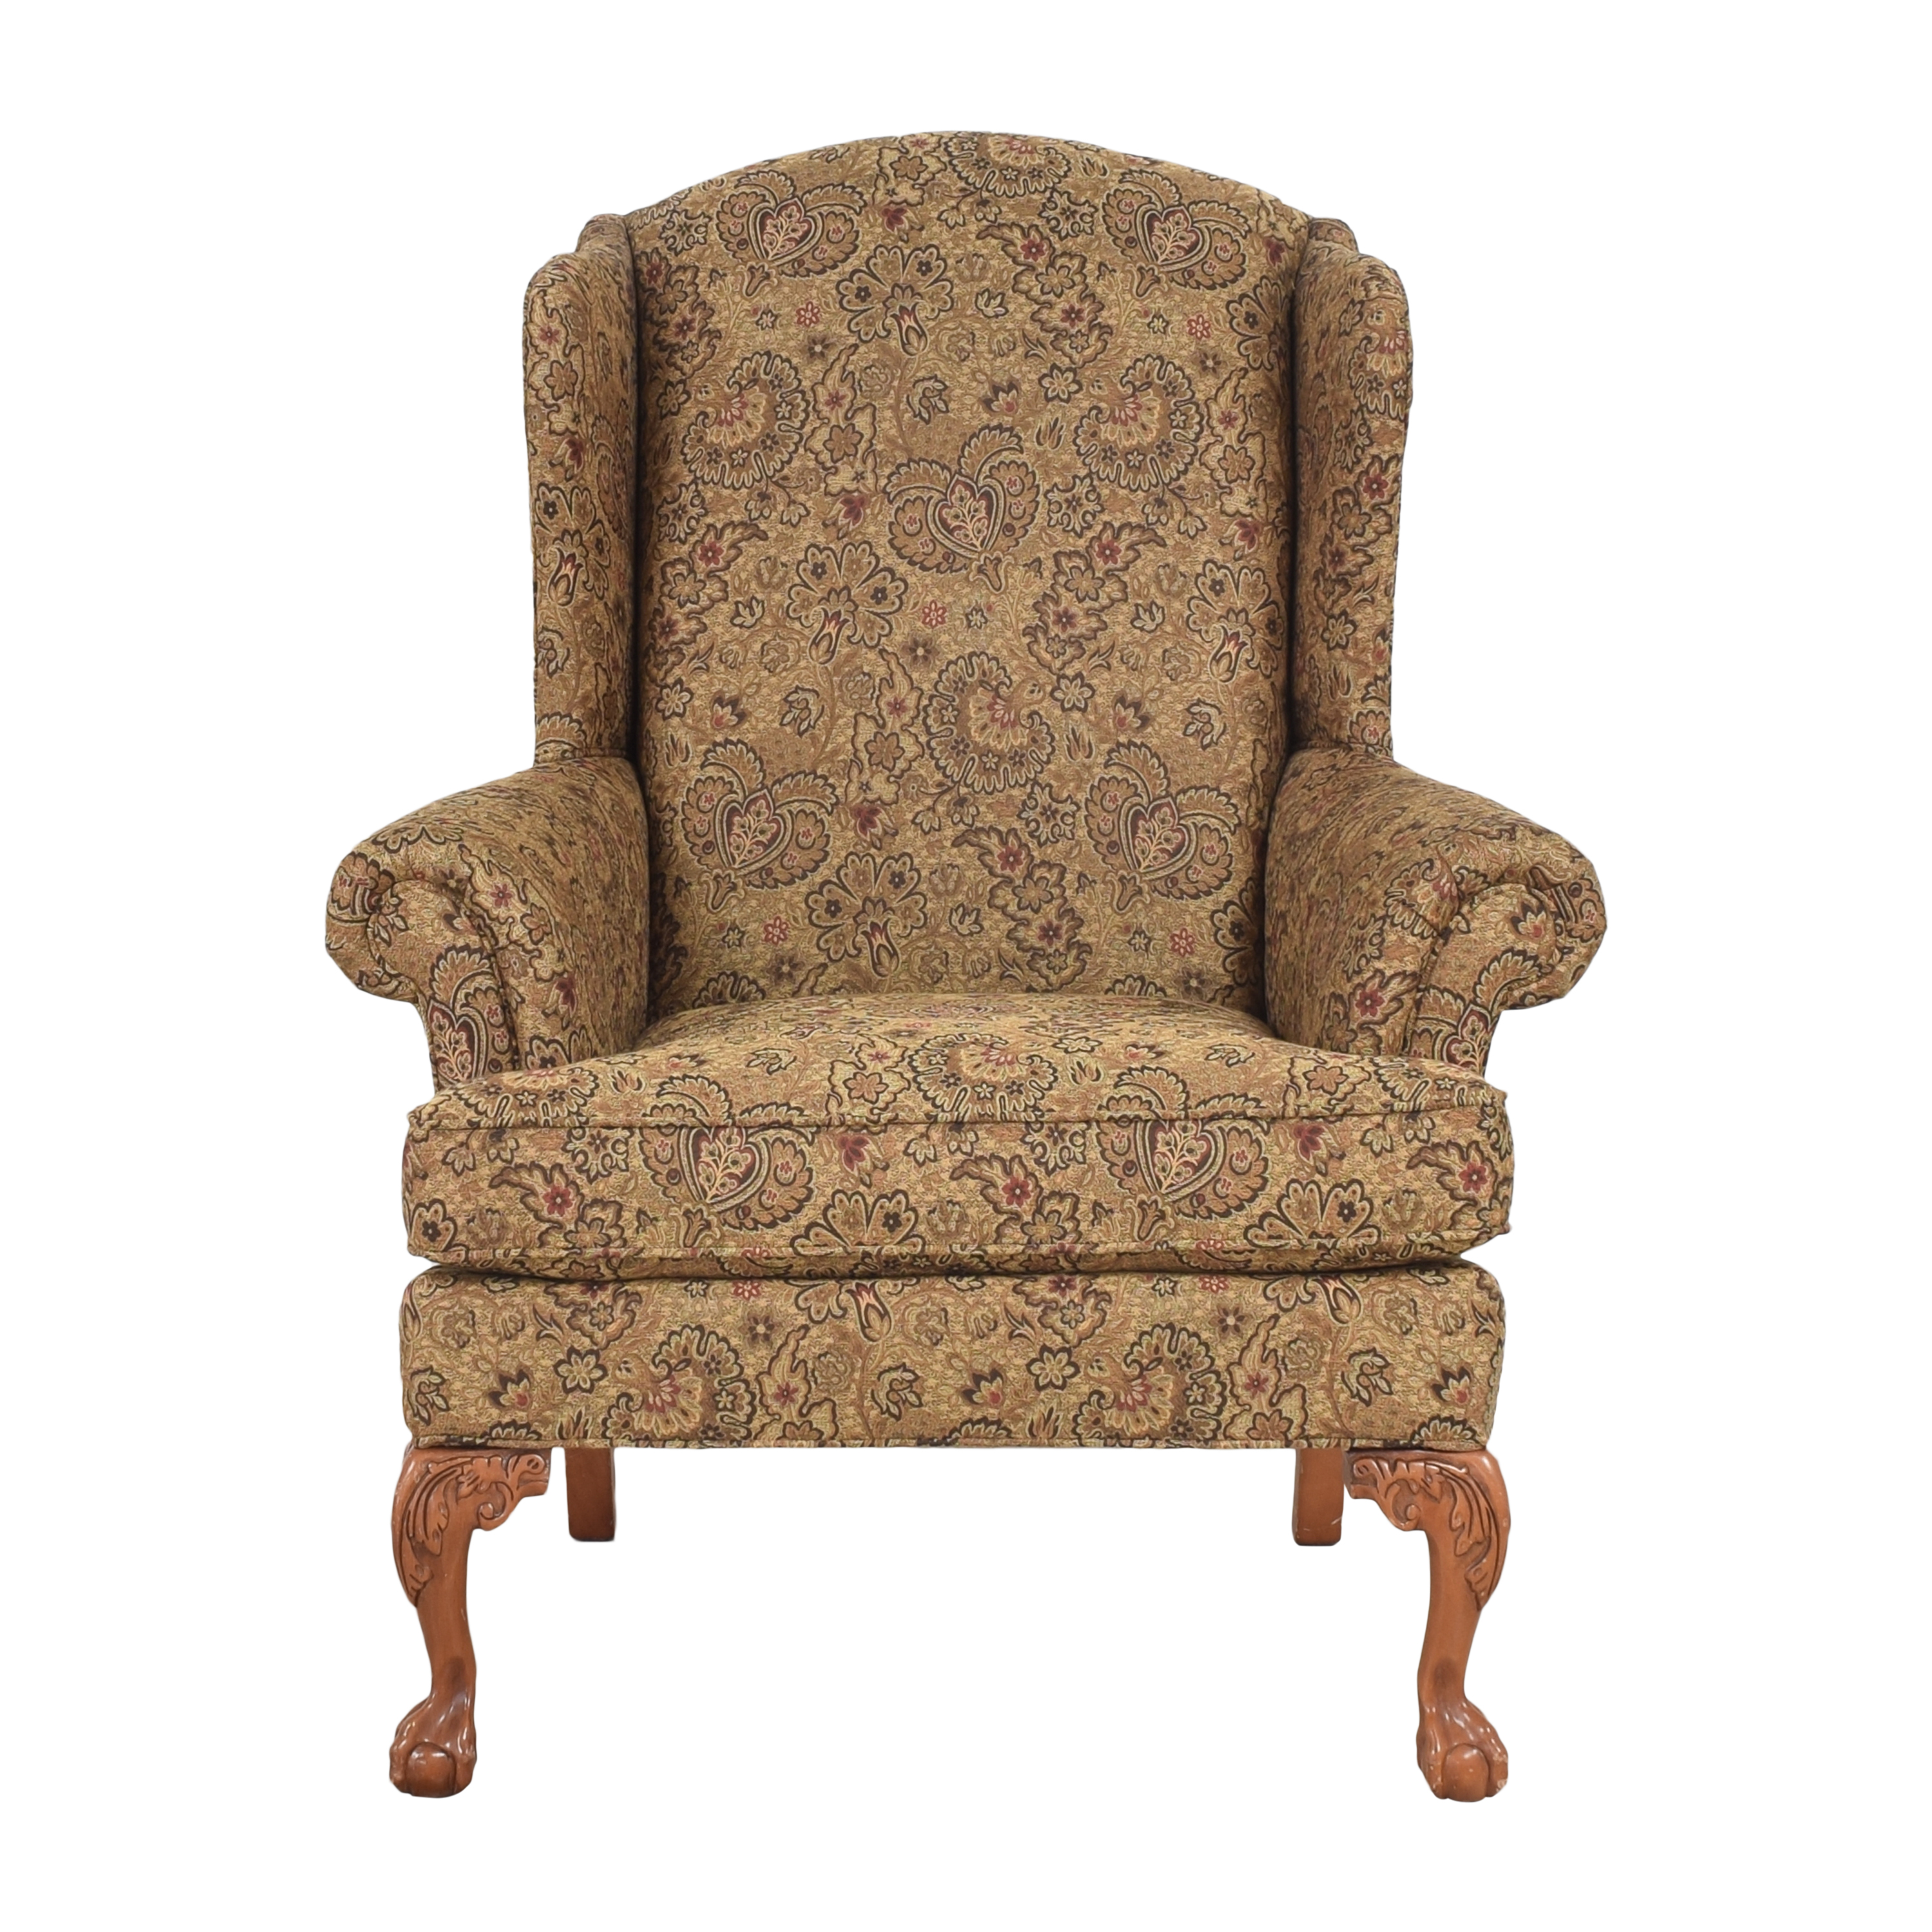 Masterfield Furniture Masterfield Furniture Wingback Accent Chair Chairs